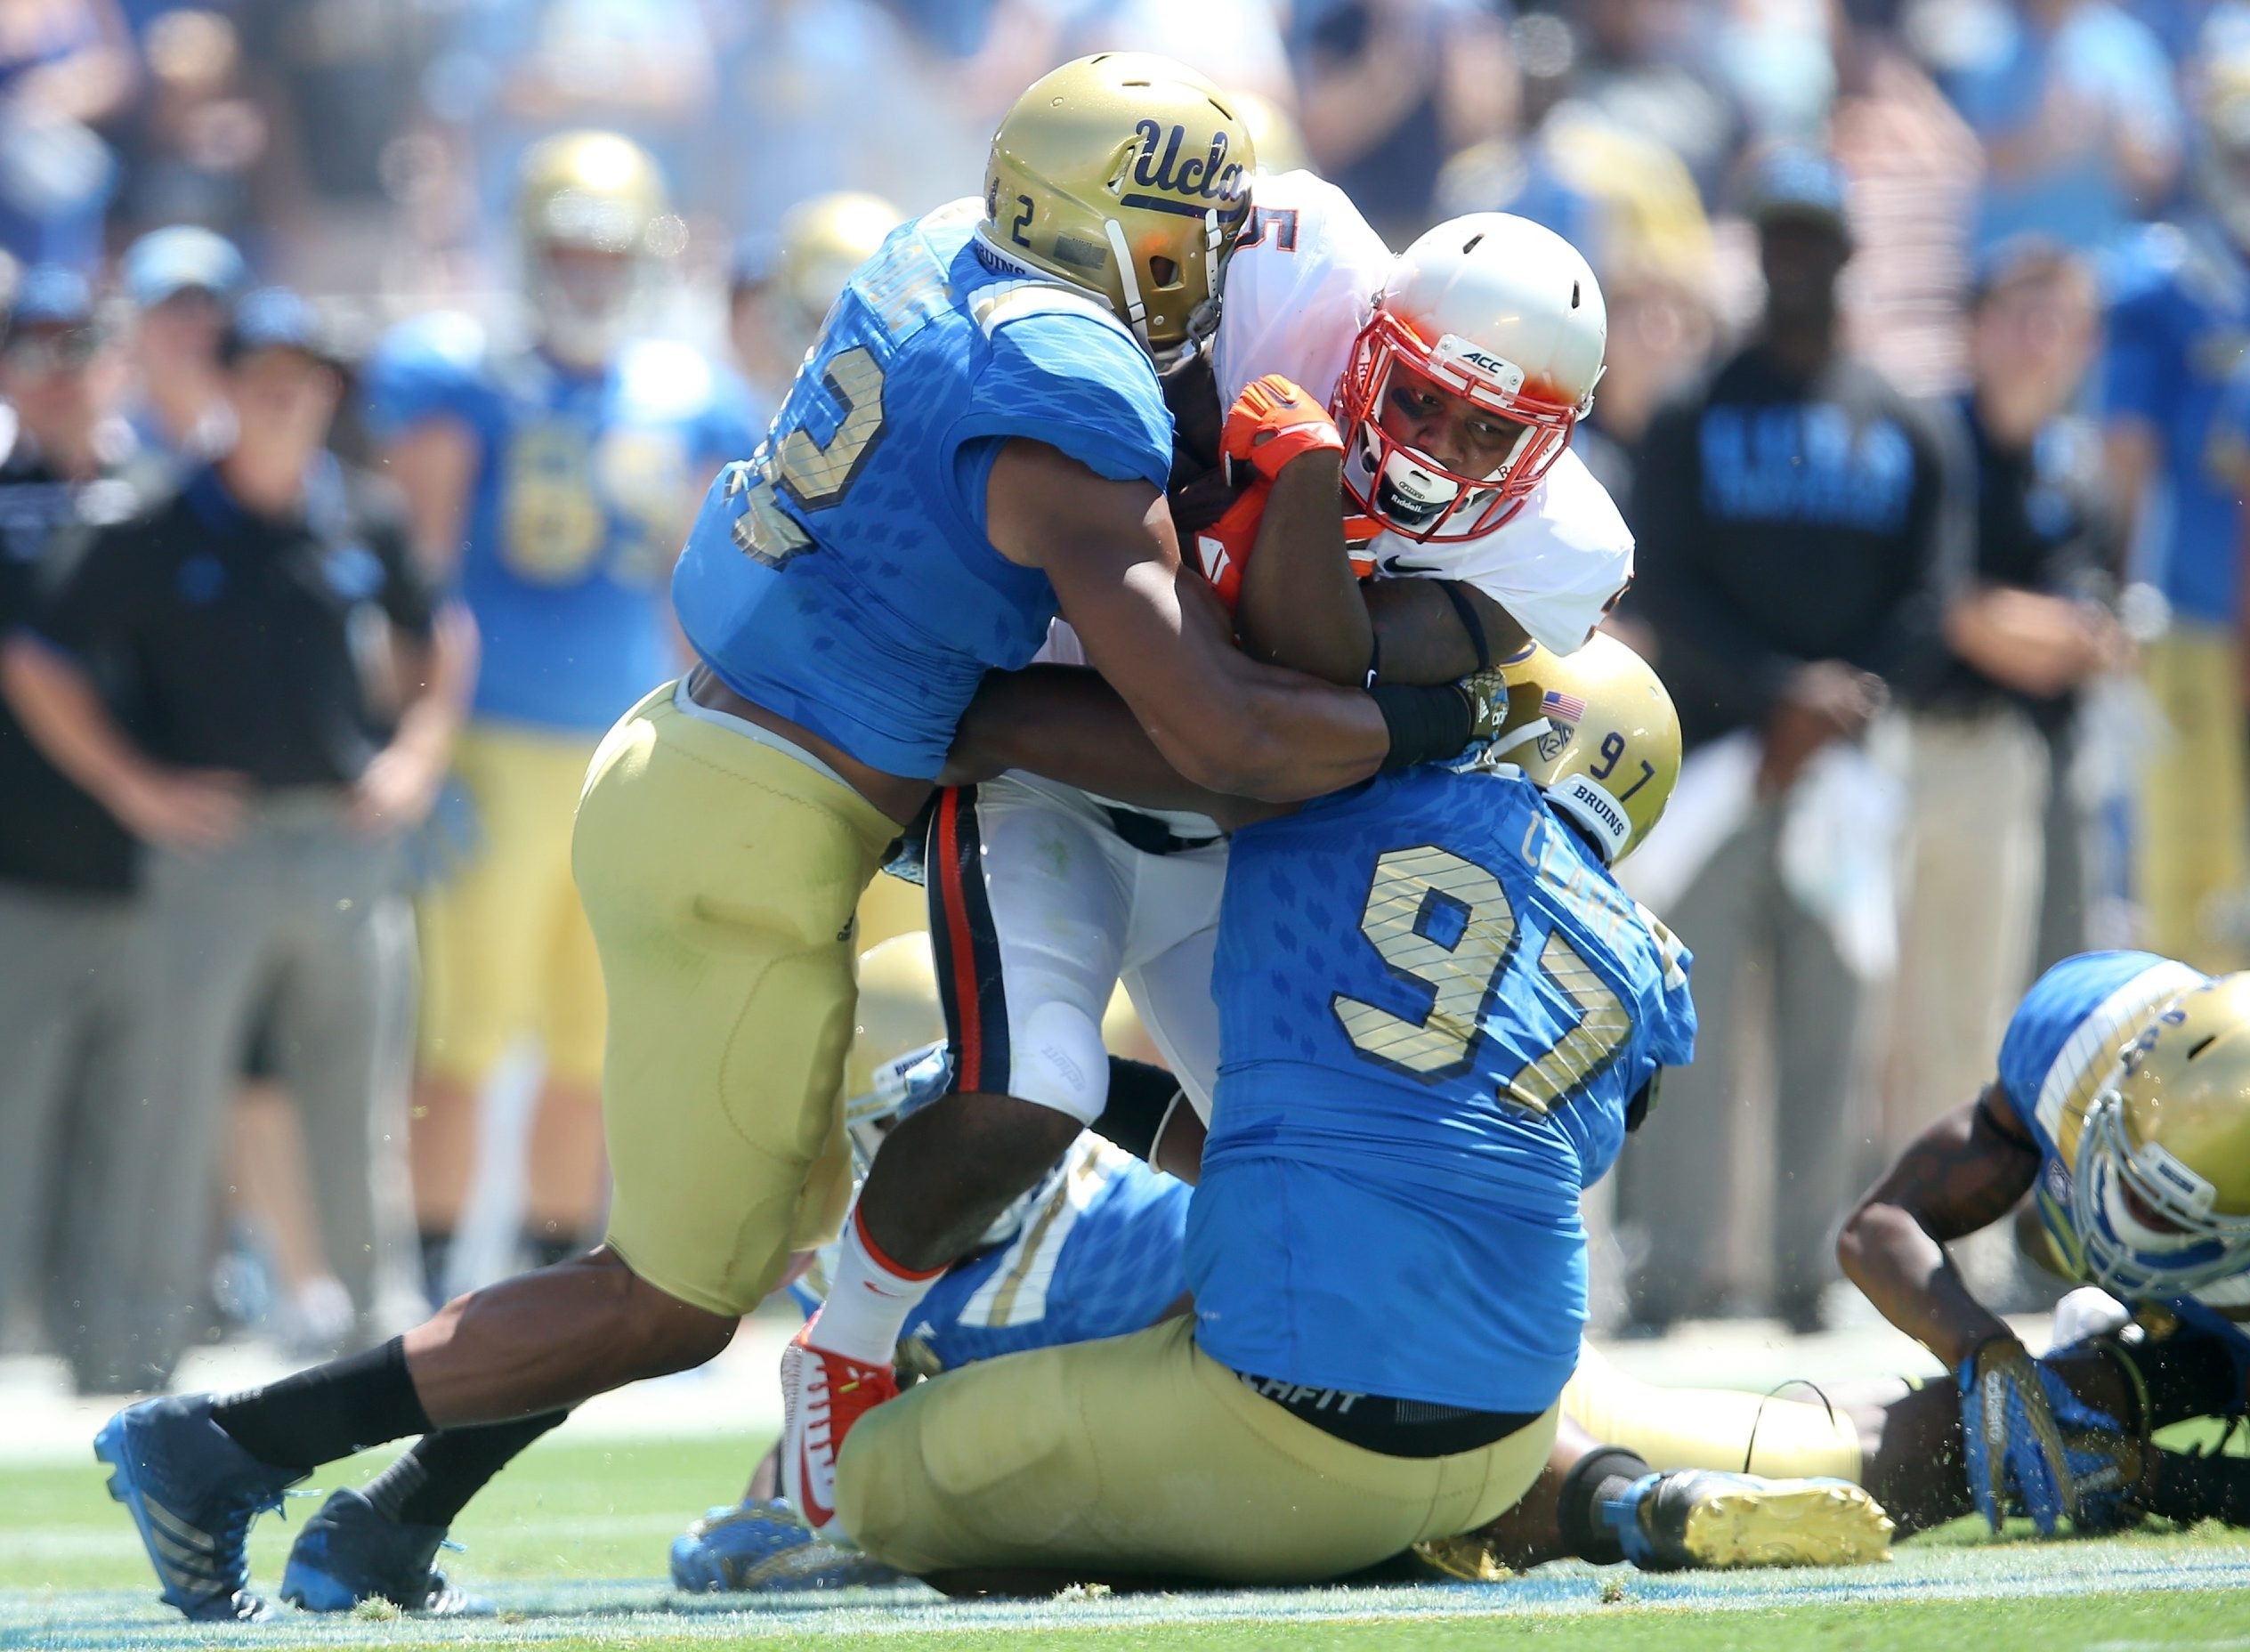 UCLA defensive lineman Kenny Clark, right, tackles Virginia running back Albert Reid. Clark says his tough childhood made him a better football player.